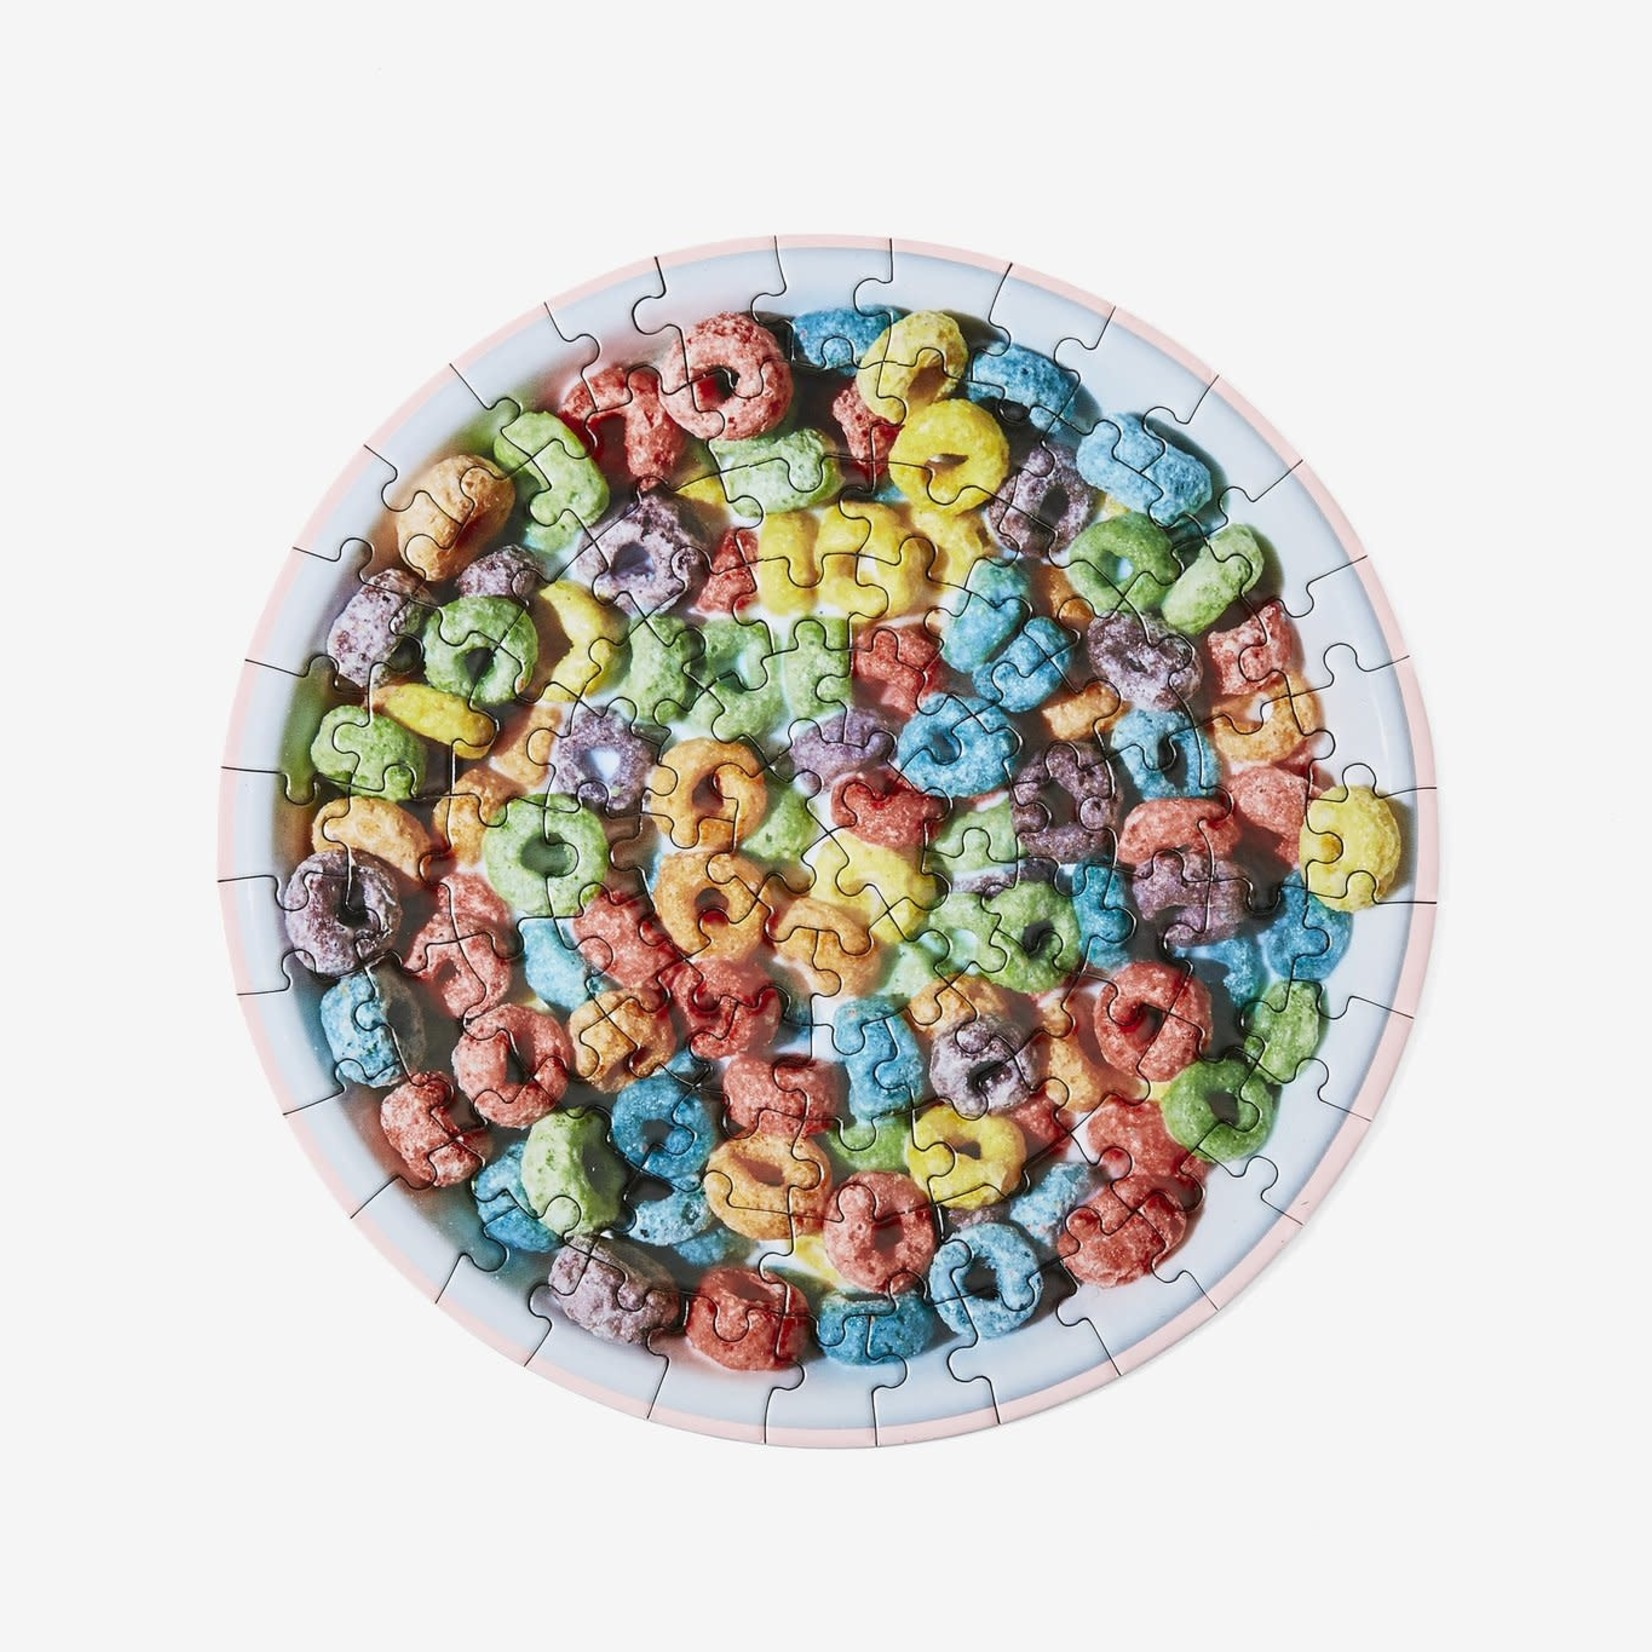 Areaware Areaware little puzzle thing® | Series 2: Munchies - More Options Available